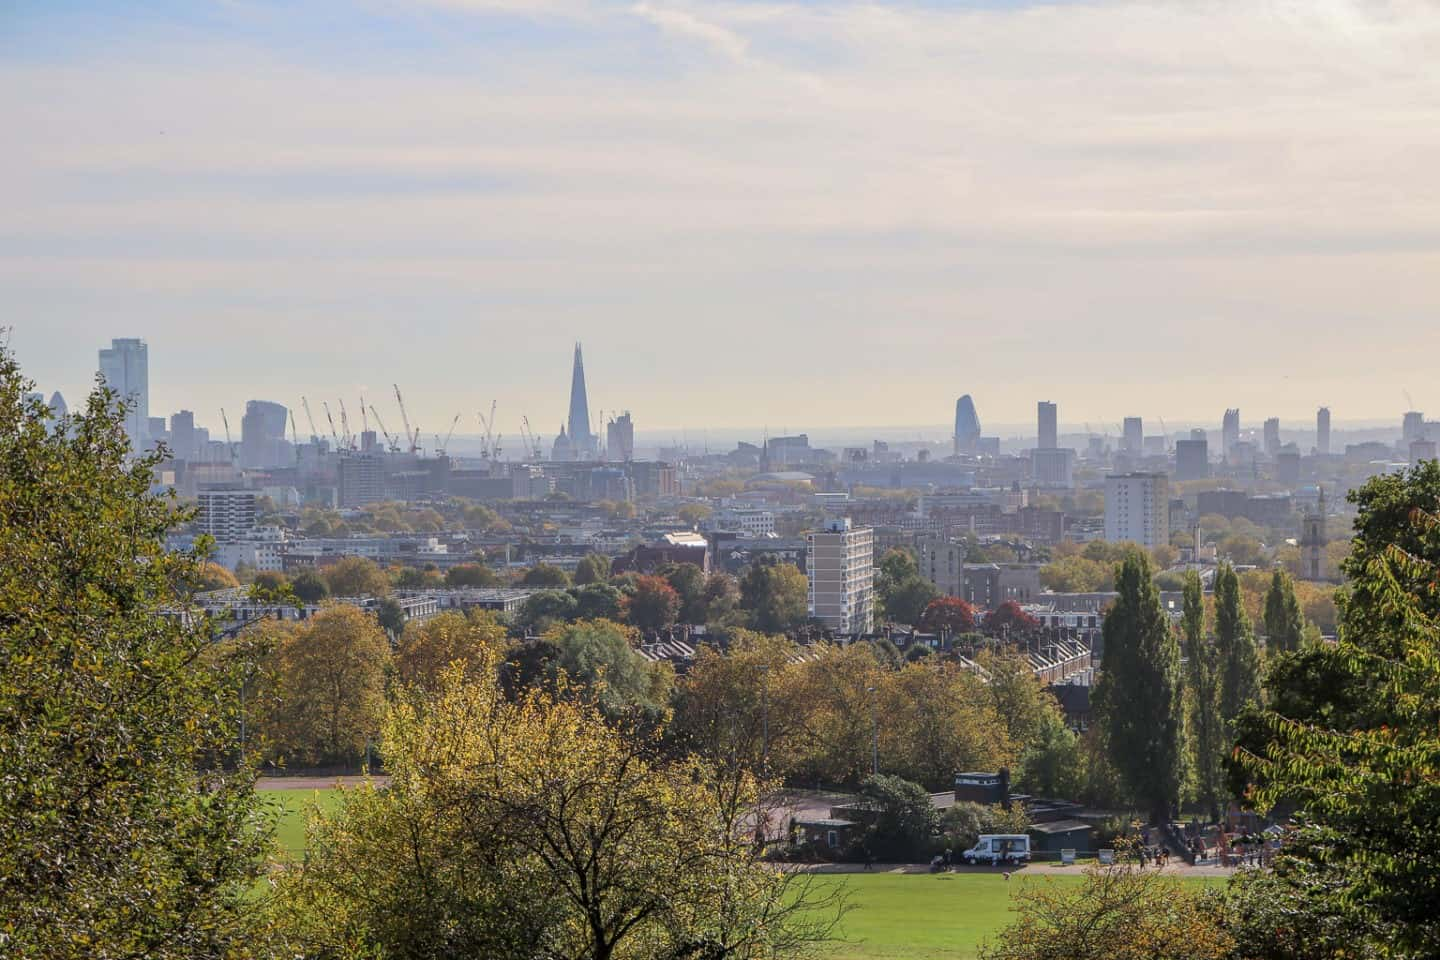 One of the best views of London is the one at Parliament Hill at Hampstead Heath